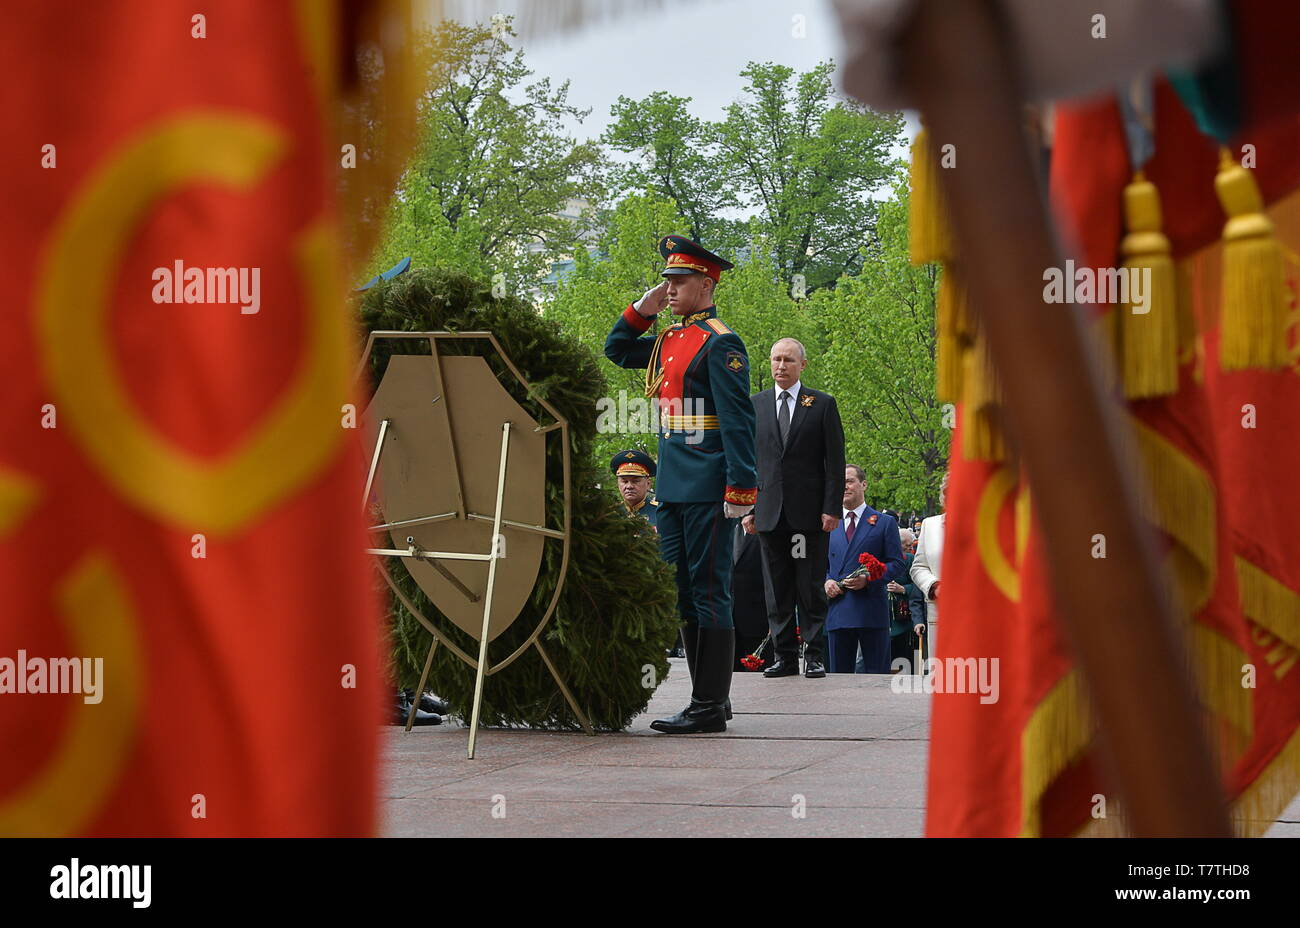 Moscow, Russia. 09th May, 2019. MOSCOW, RUSSIA - MAY 9, 2019: Russia's President Vladimir Putin (C), Russia's Defence Minister Sergei Shoigu and Russia's Prime Minister Dmitry Medvedev (L-R back) during a ceremony to lay flowers at the Tomb of the Unknown Soldier by the Kremlin Wall during celebrations marking the 74th anniversary of the victory of the Soviet Red Army over Nazi Germany in the Great Patriotic War of 1941-45, the Eastern Front of the Second World War. Alexei Druzhinin/Russian Presidential Press and Information Office/TASS Credit: ITAR-TASS News Agency/Alamy Live News - Stock Image